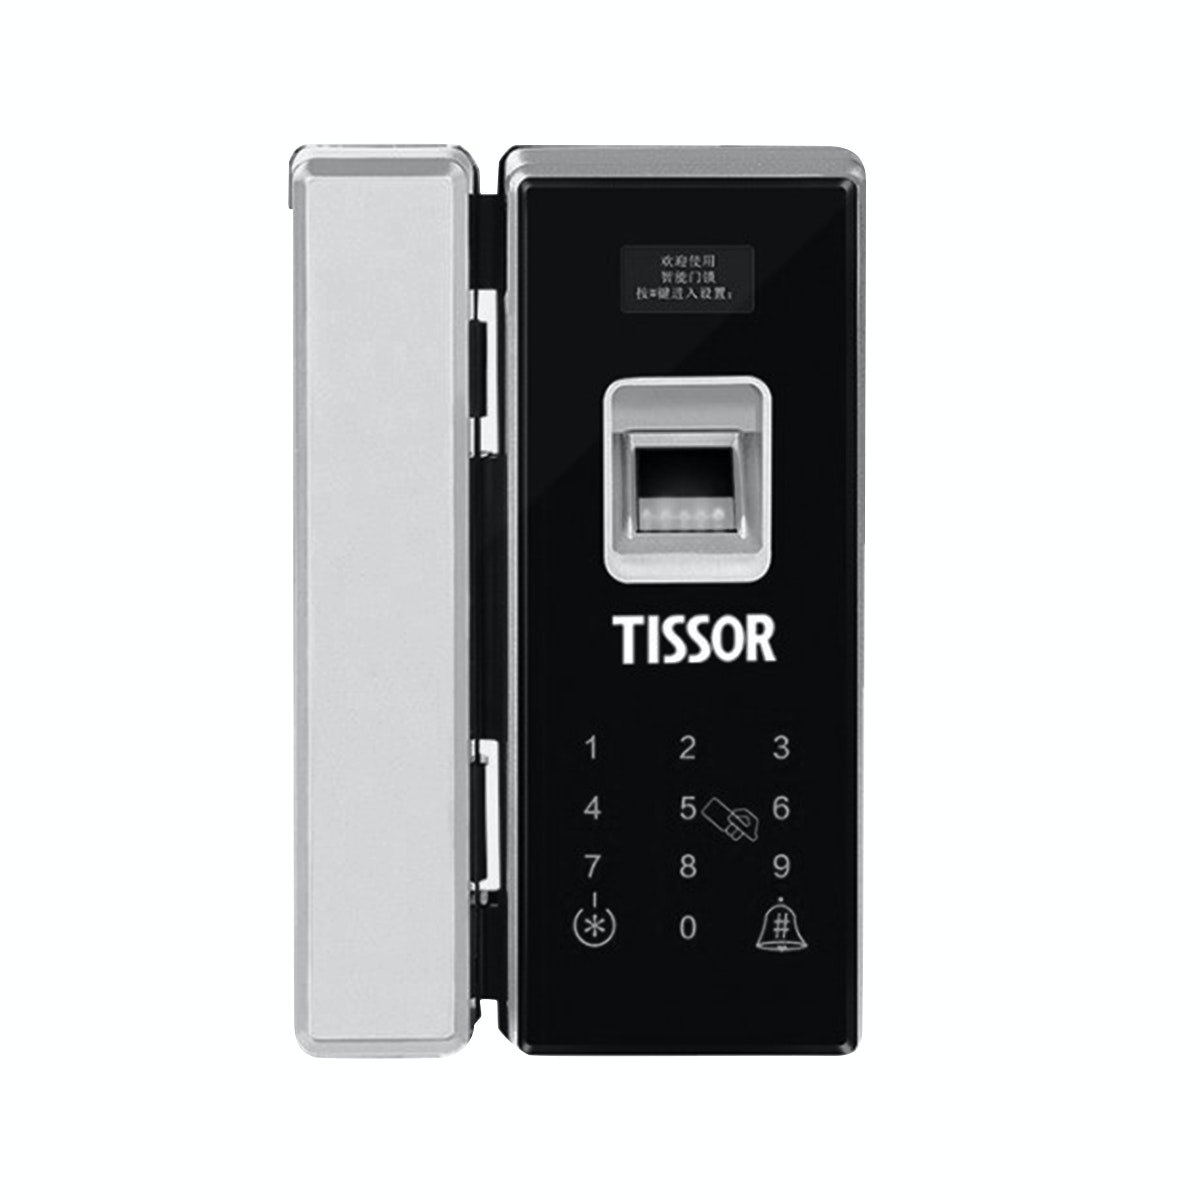 Tissor Kunci Pintu Pintar Smart Door Lock T6000